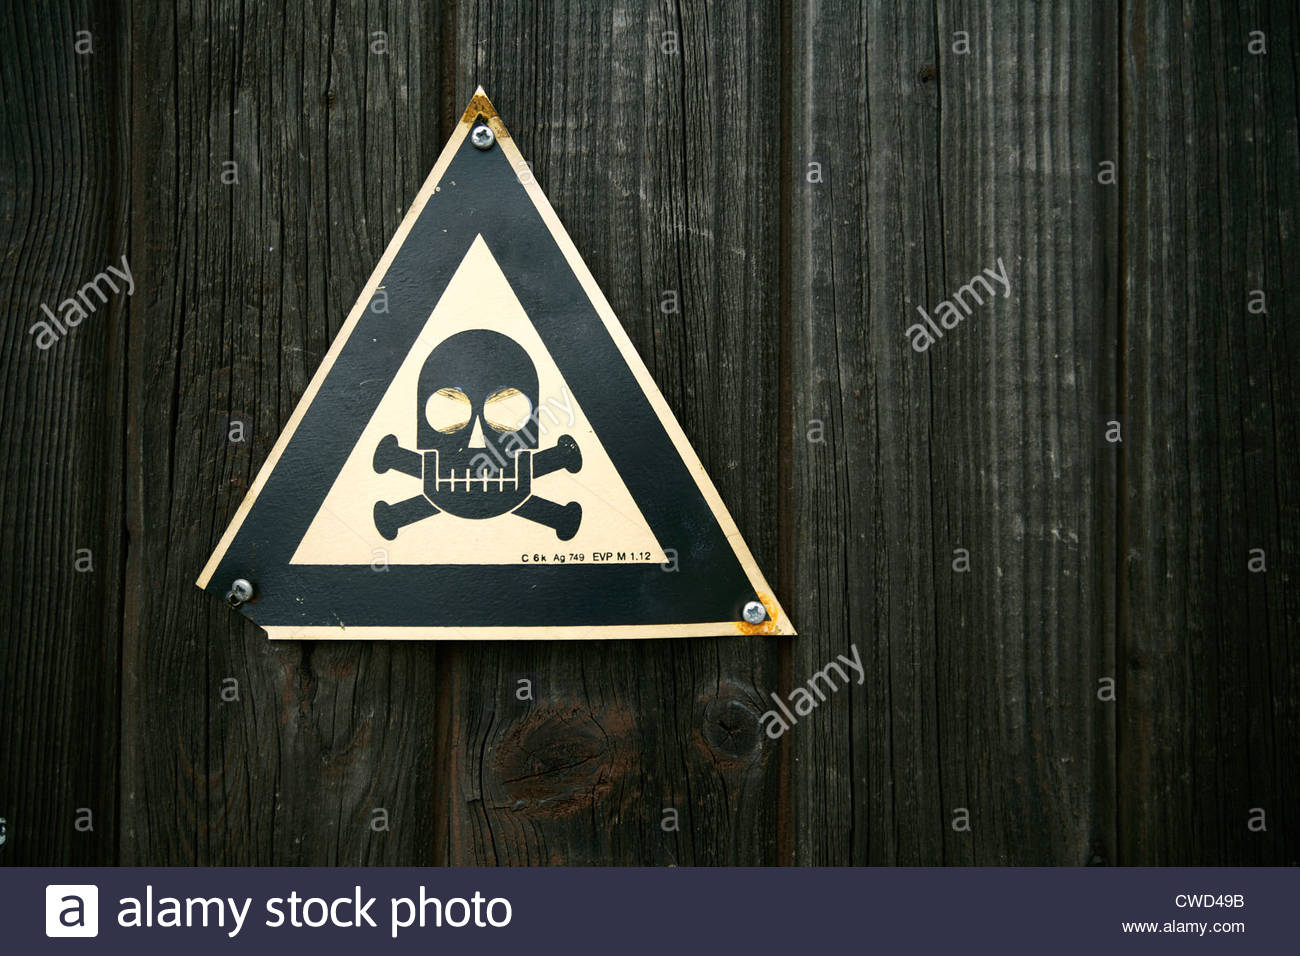 Death Sign Stock Photos & Death Sign Stock Images - Alamy